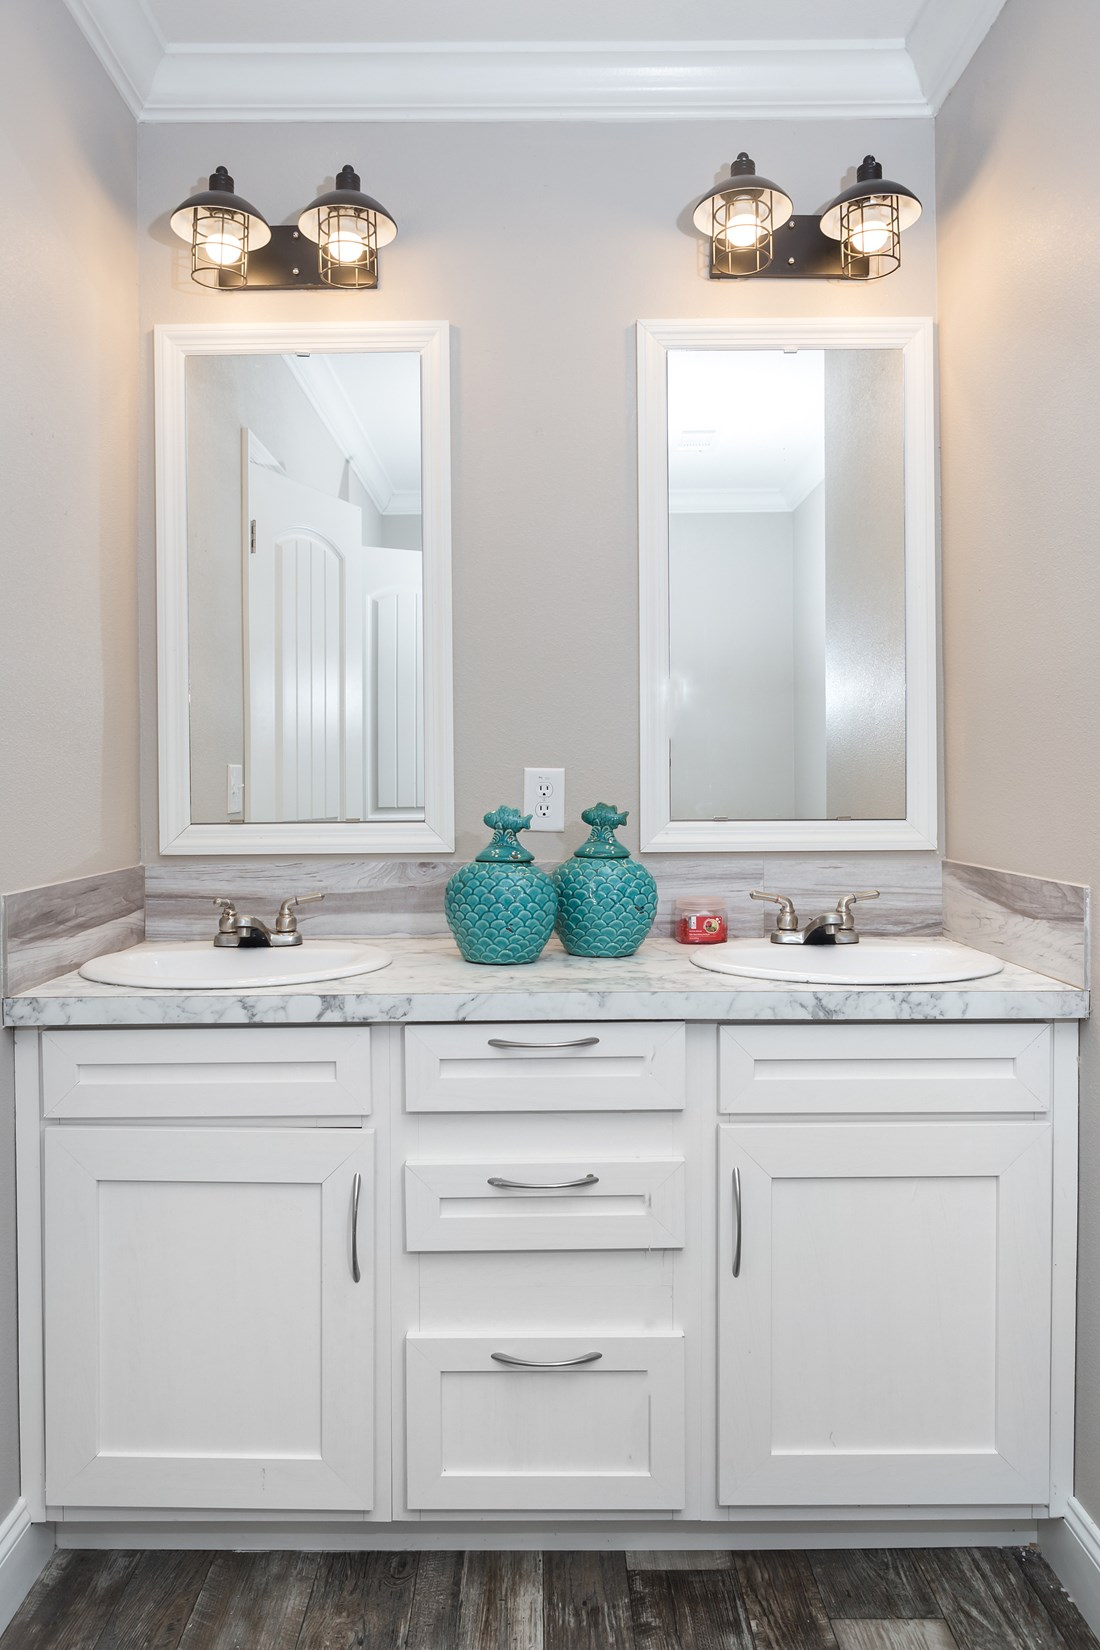 The THE BIG CLASSIC Master Bathroom. This Manufactured Mobile Home features 4 bedrooms and 2 baths.